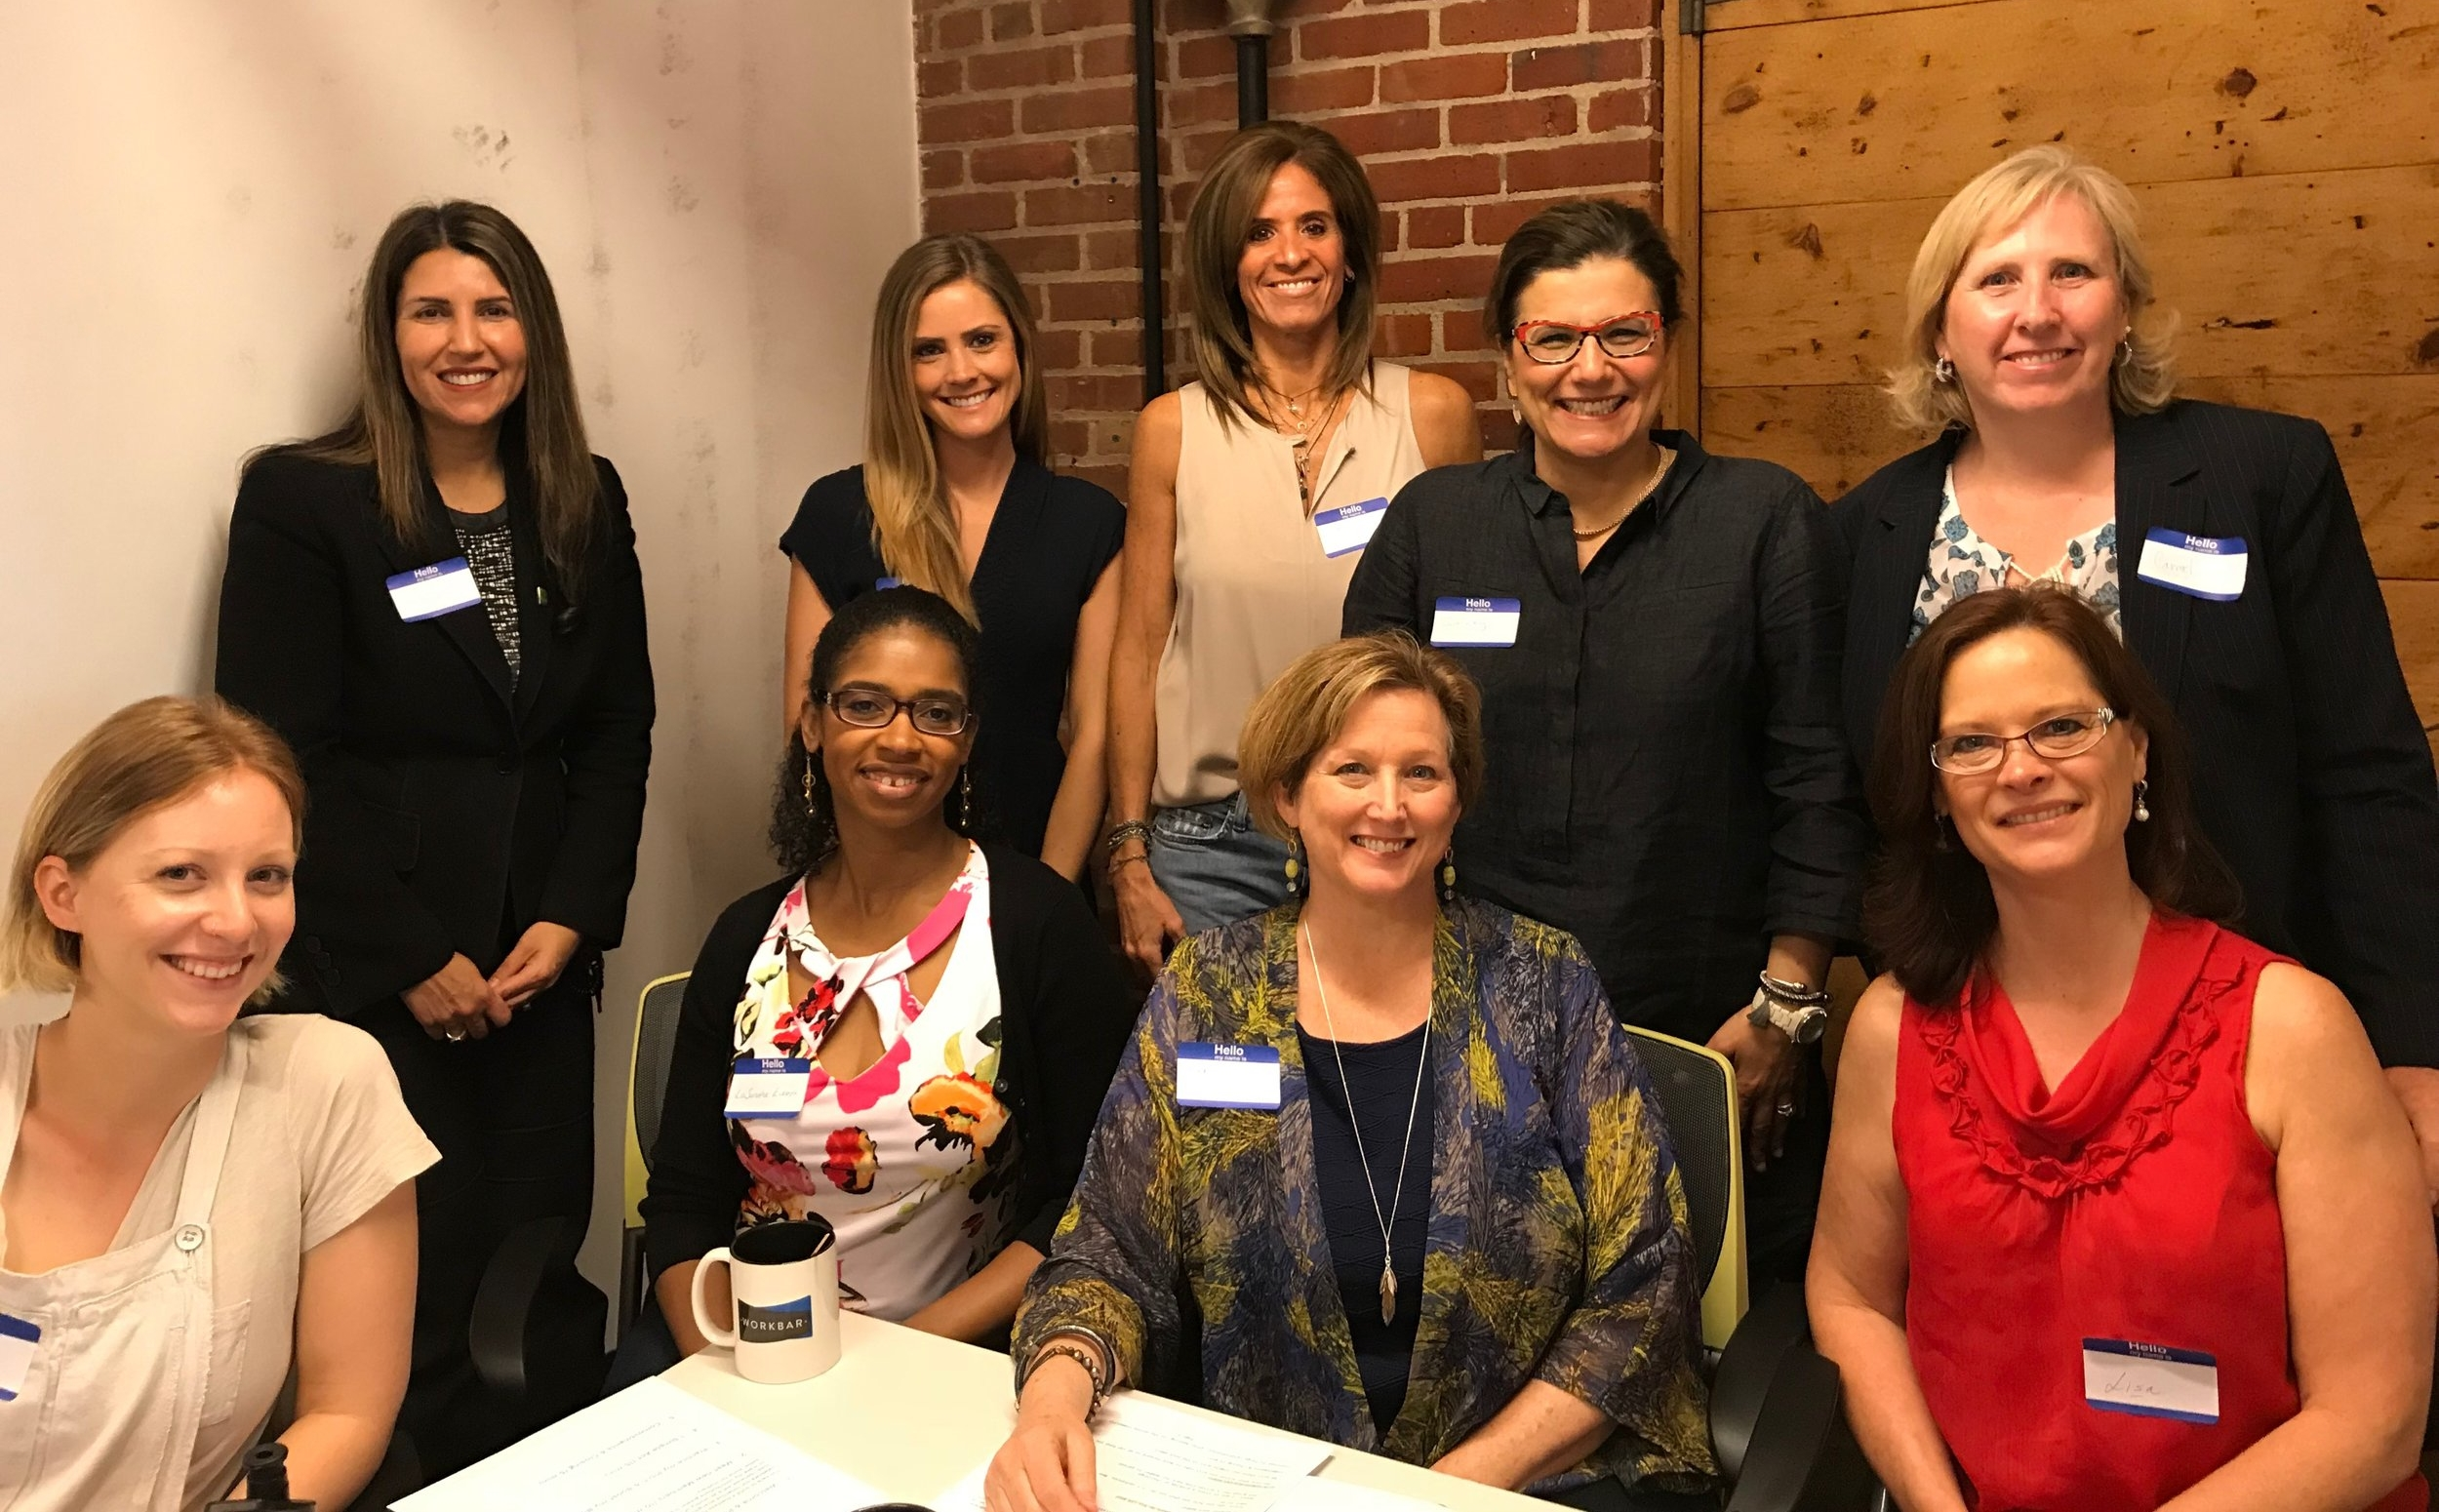 Pamela Willsey  at our Arlington Boost event along with members  Becky Mariano ,  Sairey Leone Luterman ,  Carmel Murphy-Kotyan ,  Cat Camara ,  LuSundra Everett ,  Robyn Mather , and  Lisa Smith .